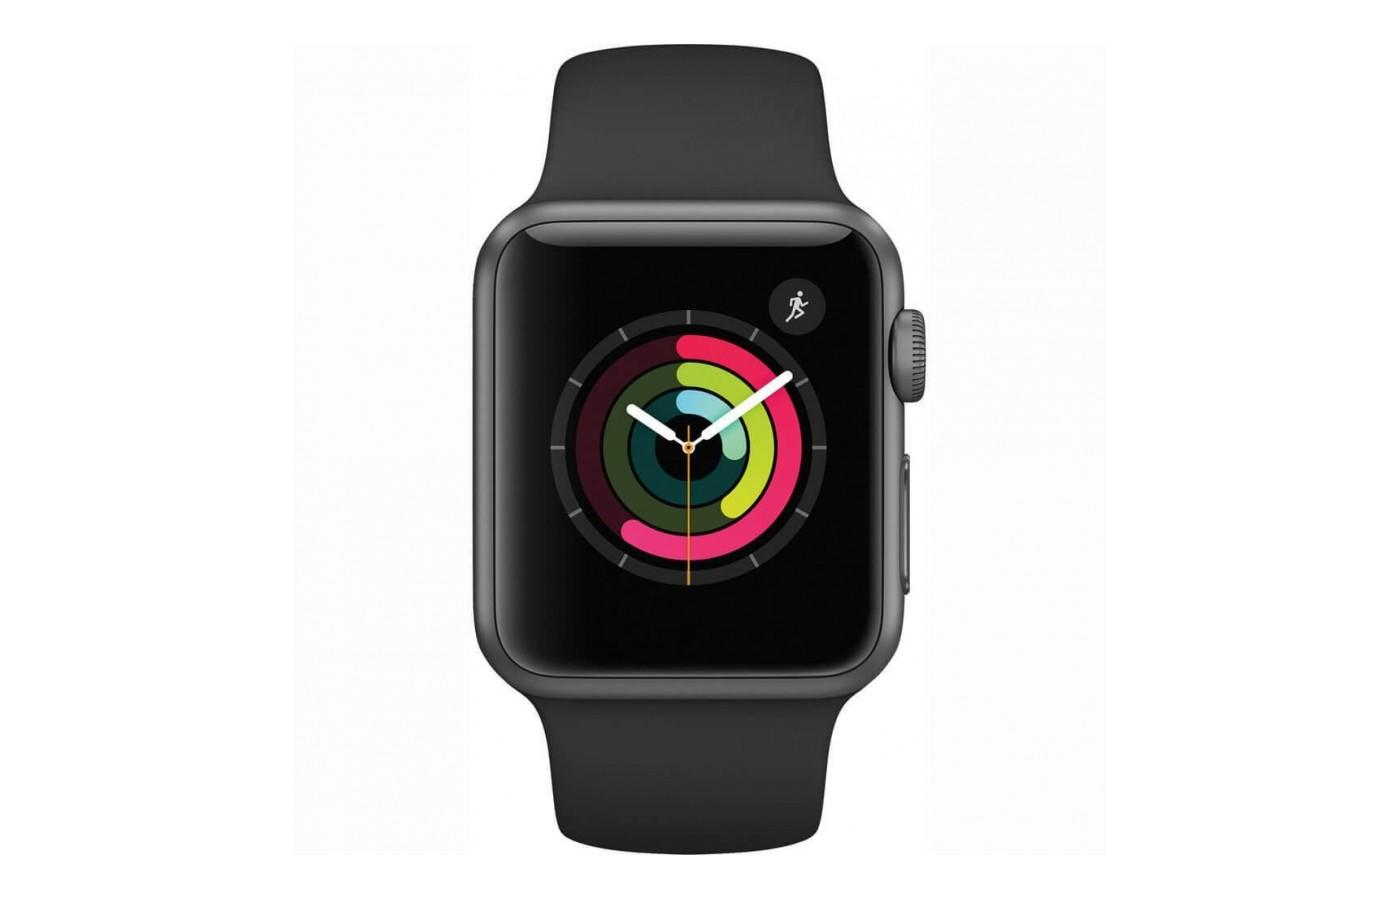 The Apple Watch Series 1 has a retina display with Force Touch